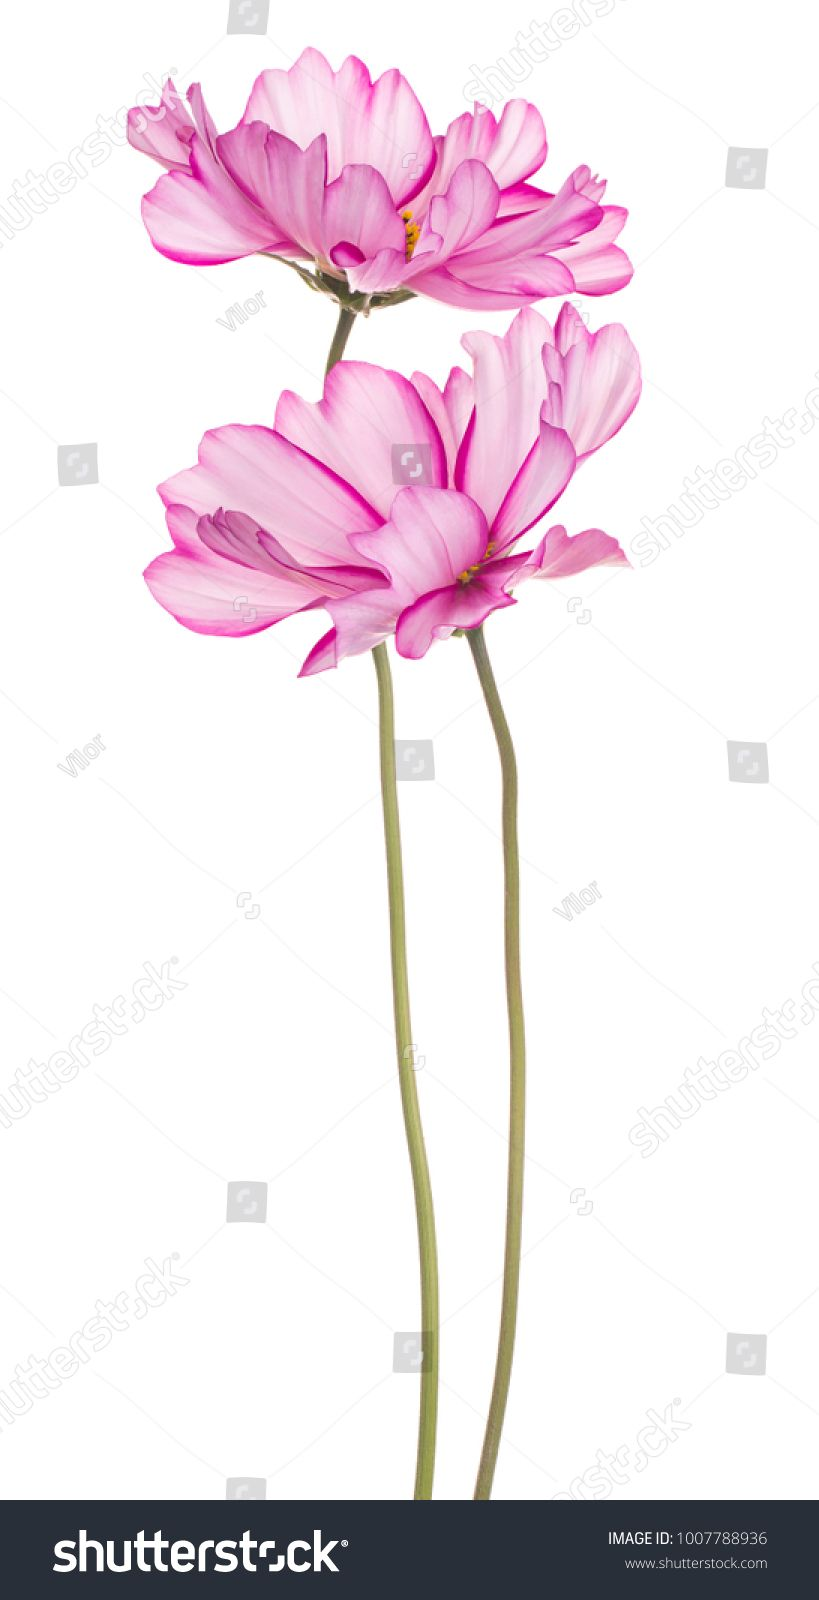 Studio Shot Of Magenta Colored Cosmos Flowers Isolated On White Background Large Depth Of Field Dof Macro Hoa đồ Họa Hinh